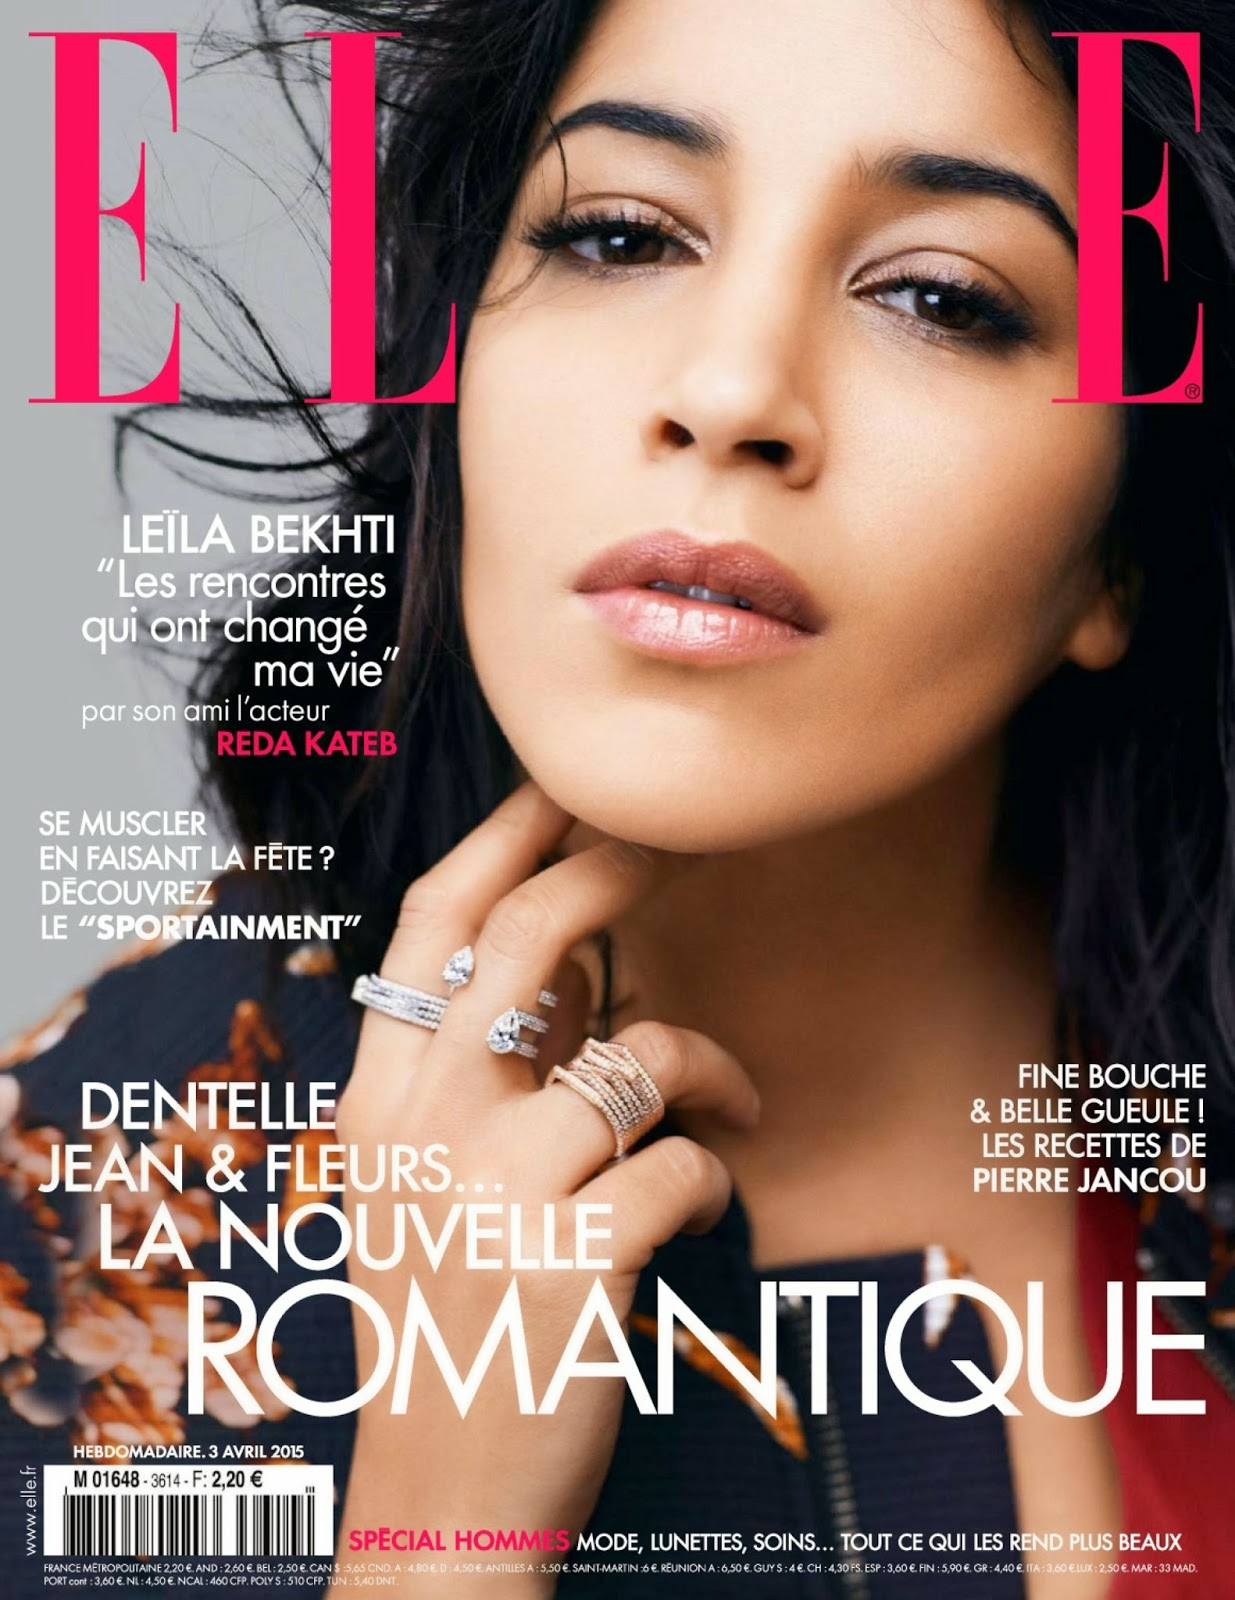 Actress @ Leila Bekhti - Elle France, April 2015